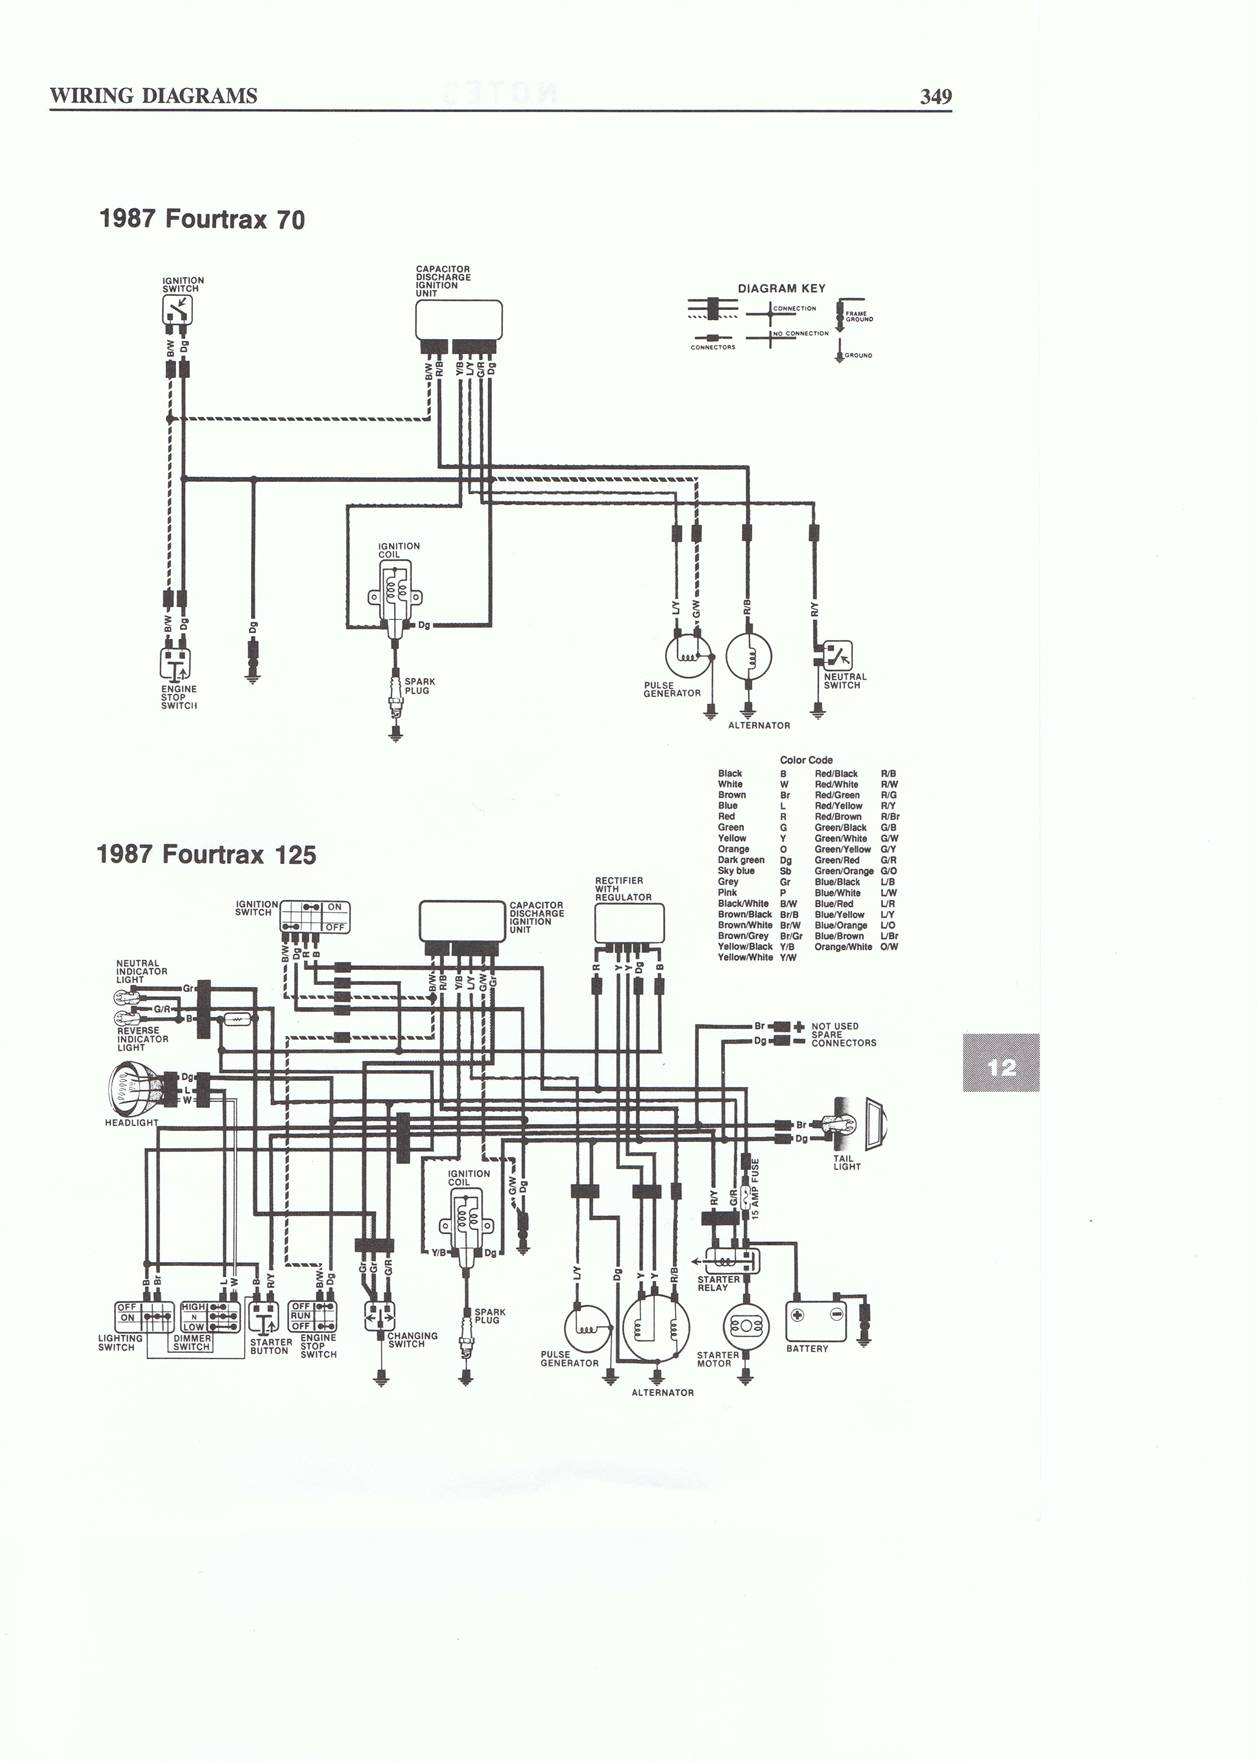 Carter Talon 150 Cdi Wiring Diagram